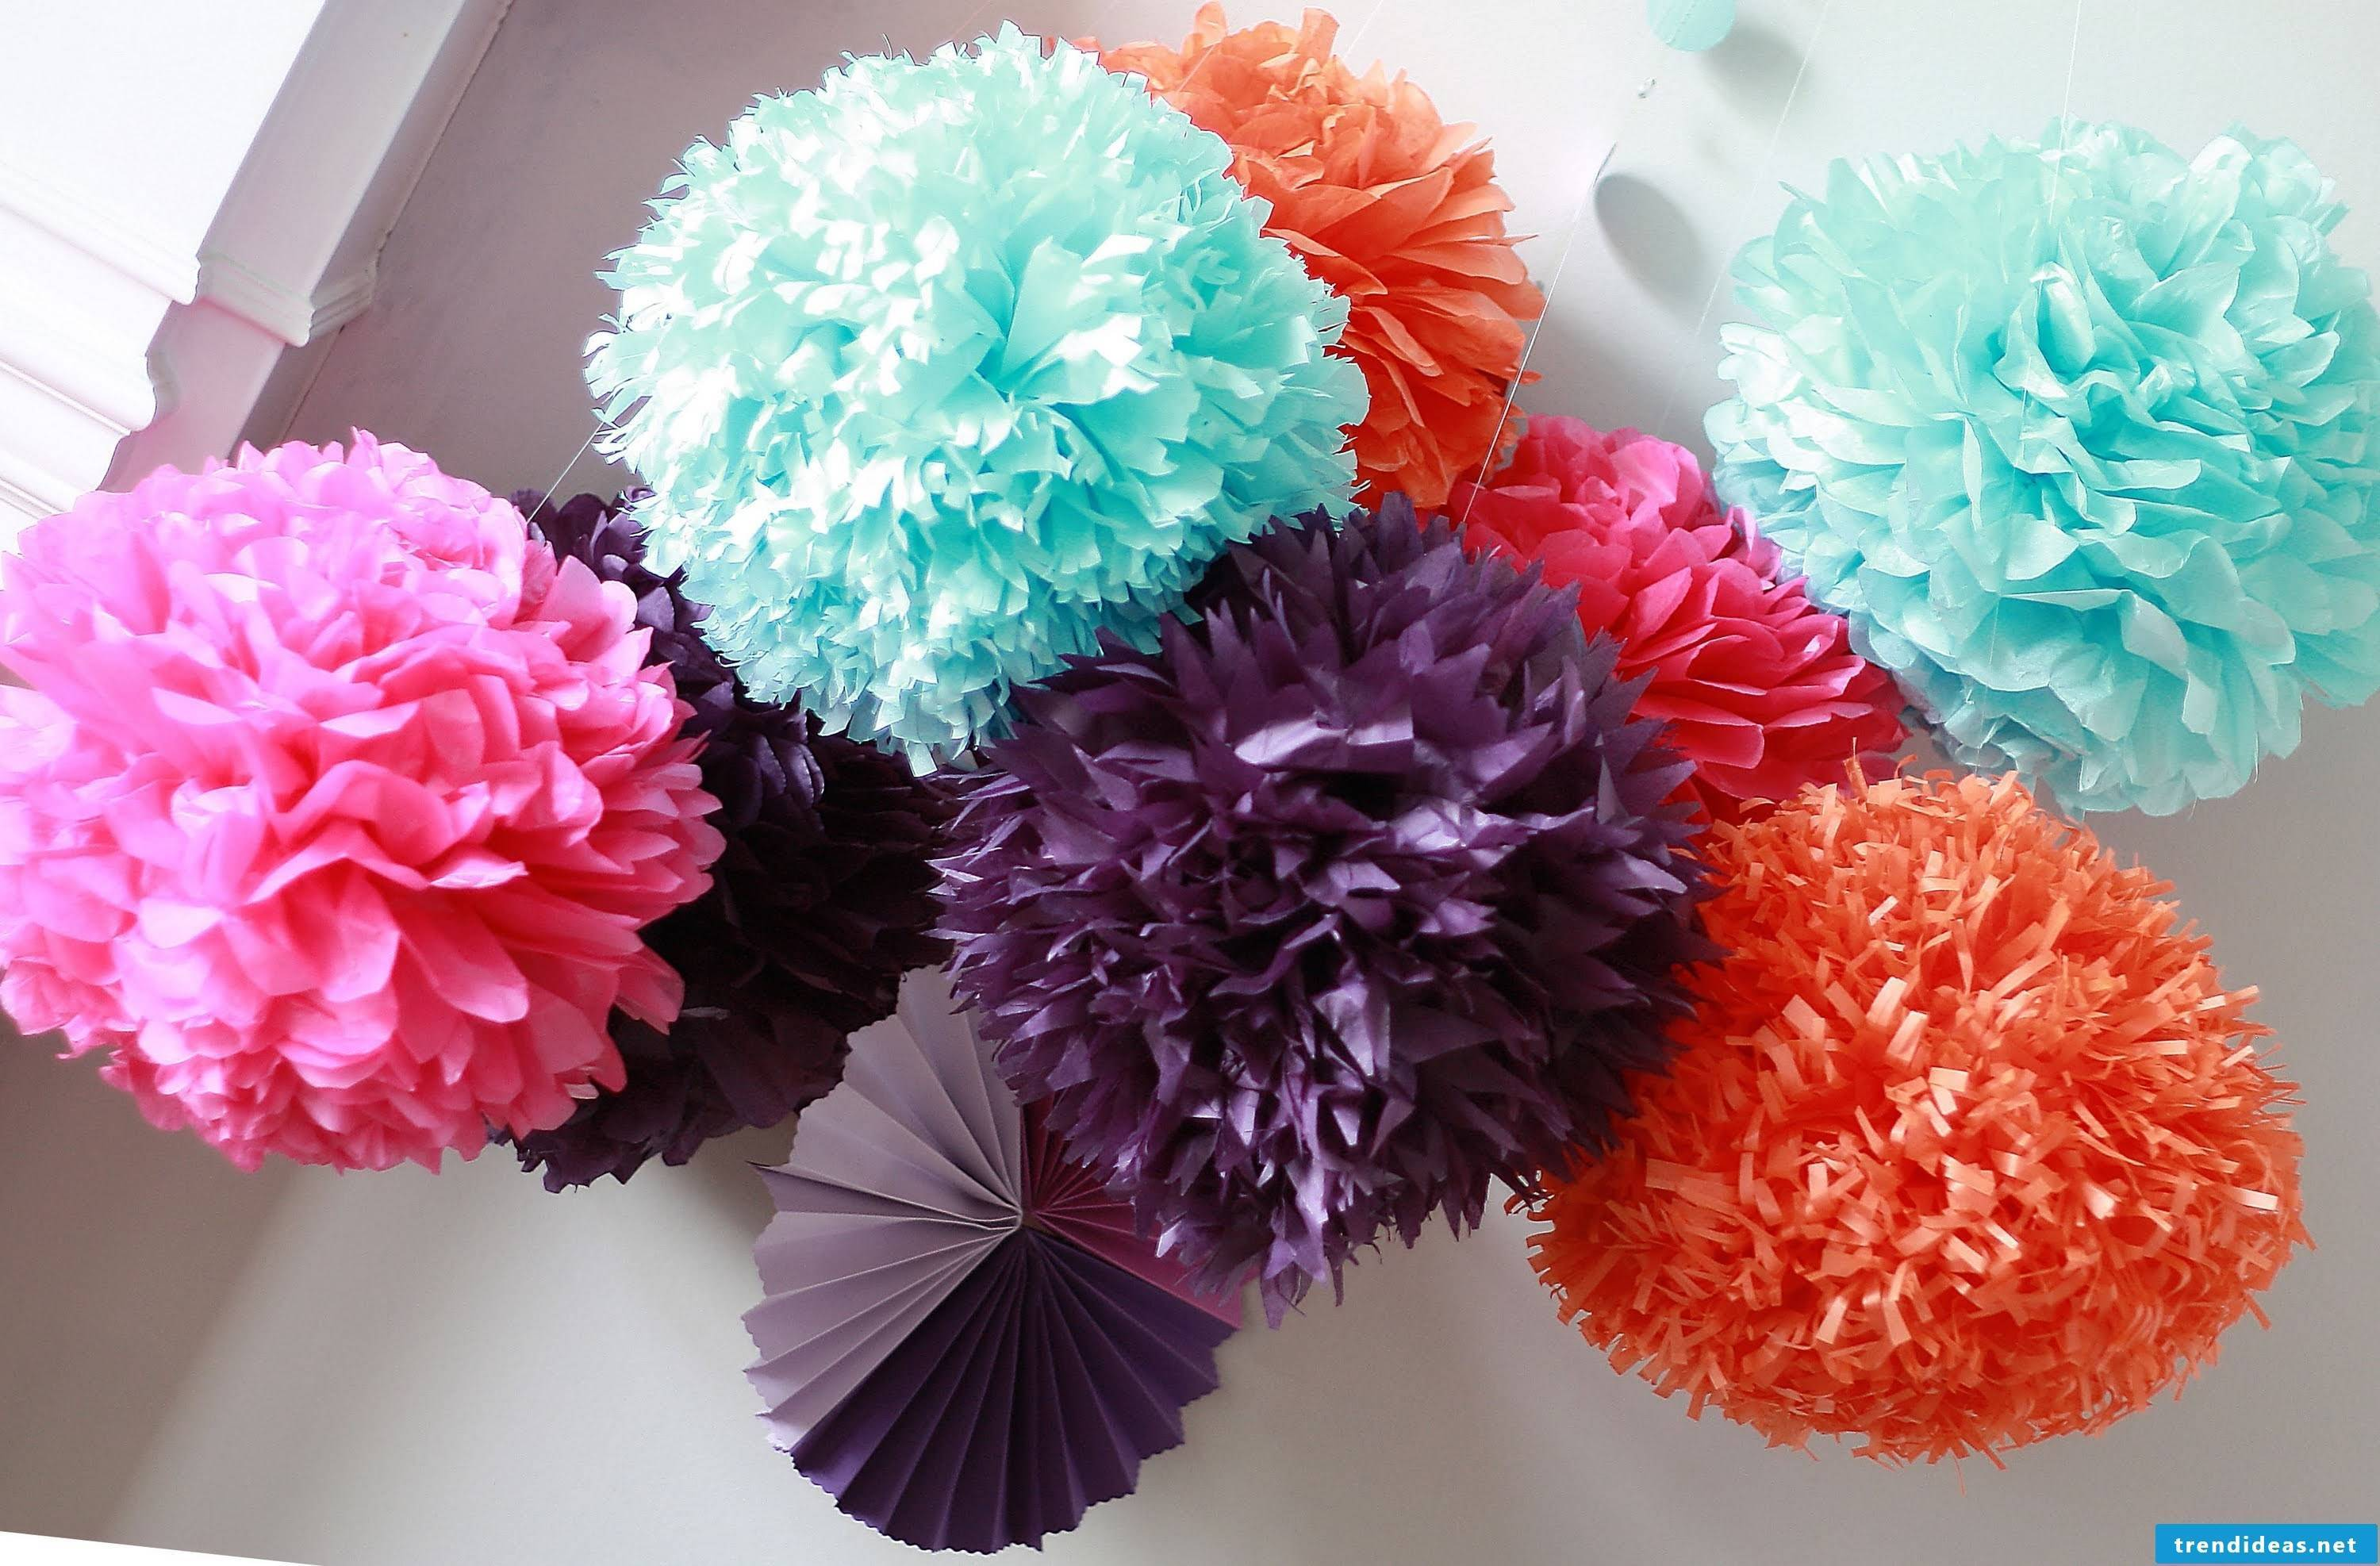 Colorful pompoms for colorful mood